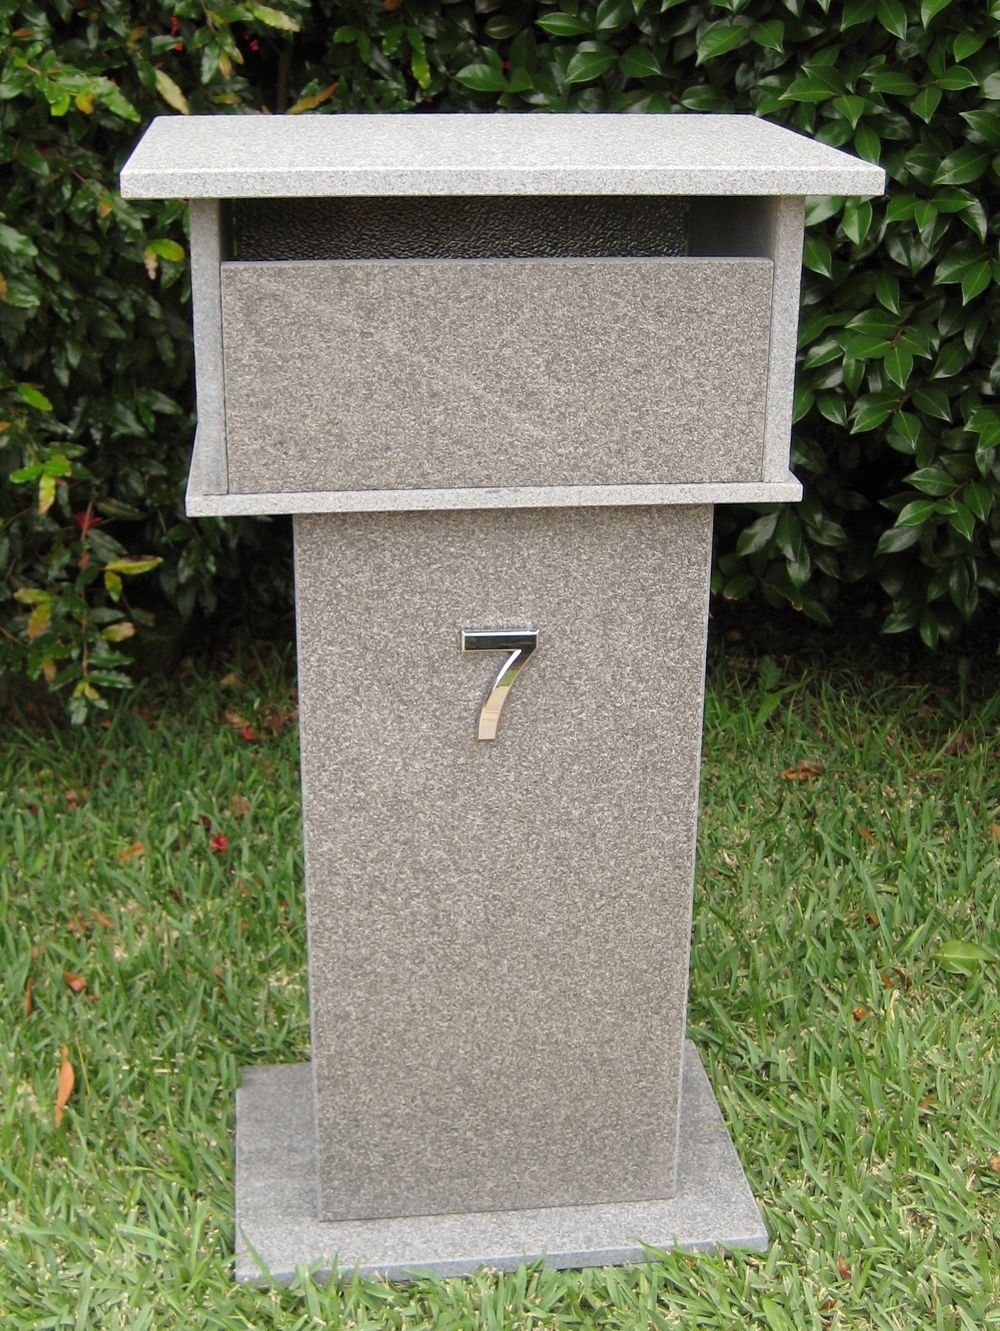 86. Blue stone letterbox with bushhammered finish. Back 2 key aluminium door. Tough material. Sizes 720x400x300 $500